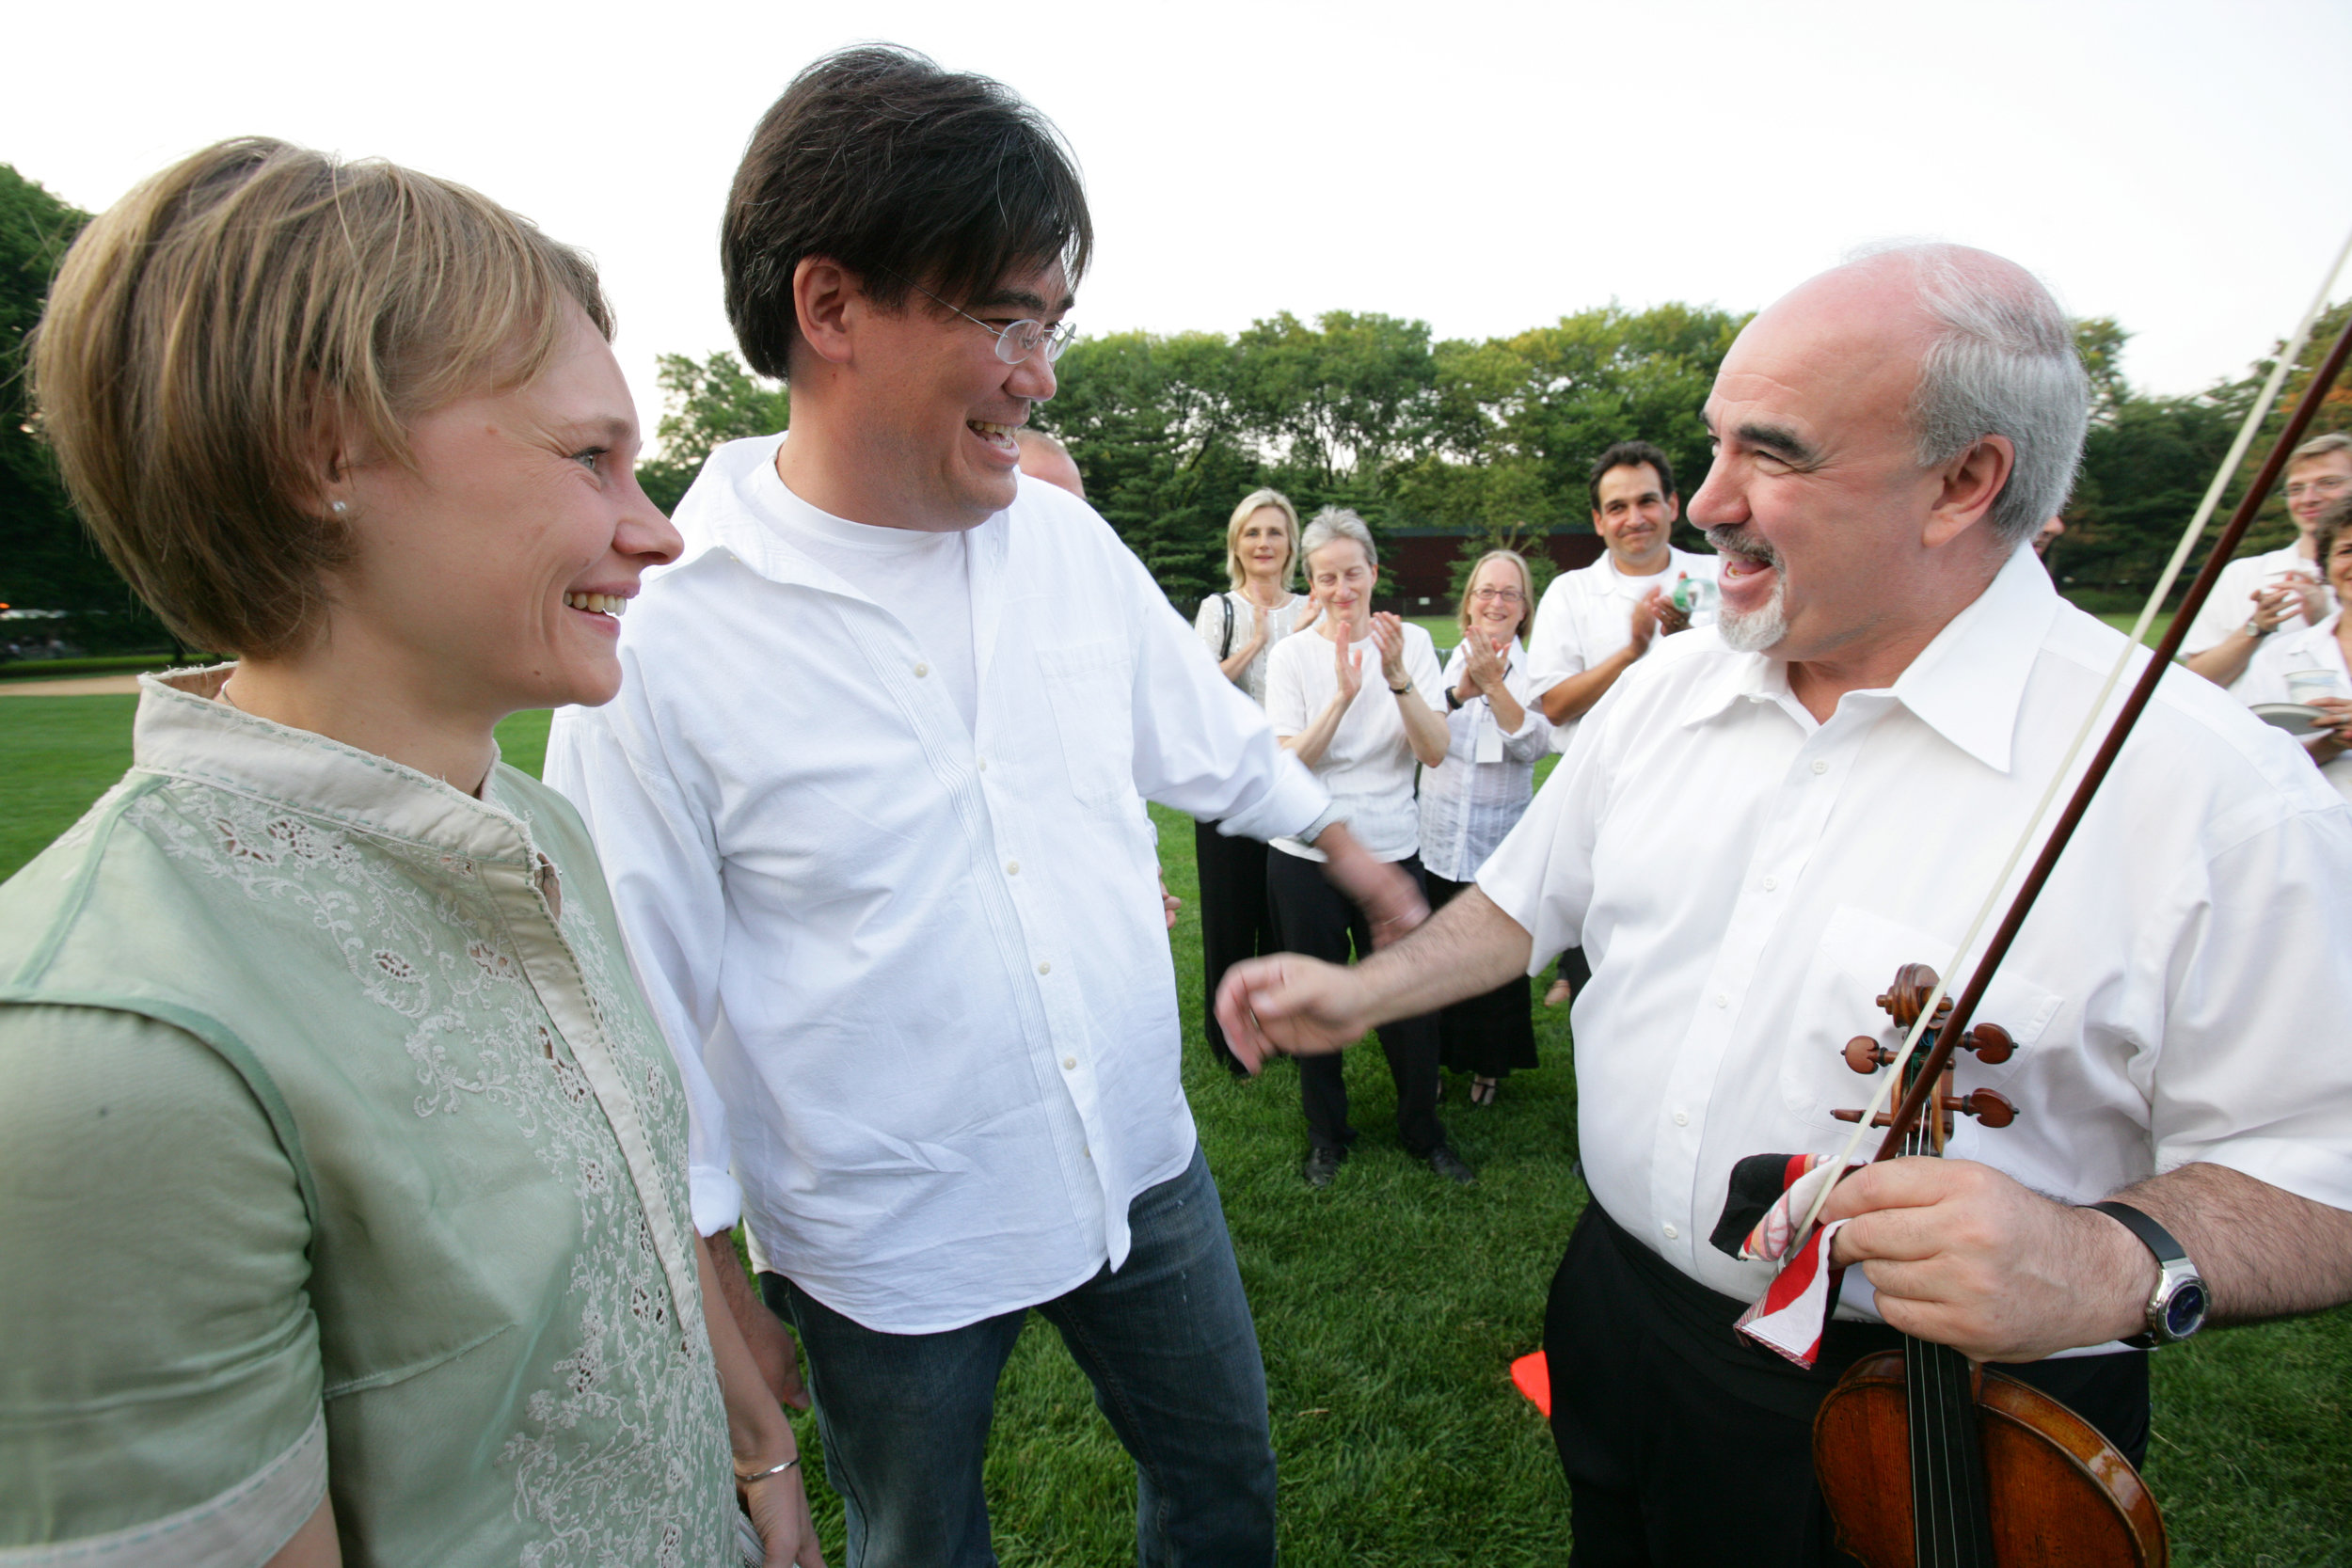 Alan Gilbert loves the Concerts in the Parks, so it was most appropriate that on the eve of the press conference announcing his appointment as Music Director, the New York Philharmonic musicians learned the news backstage just before a 2007 performance in Central Park.